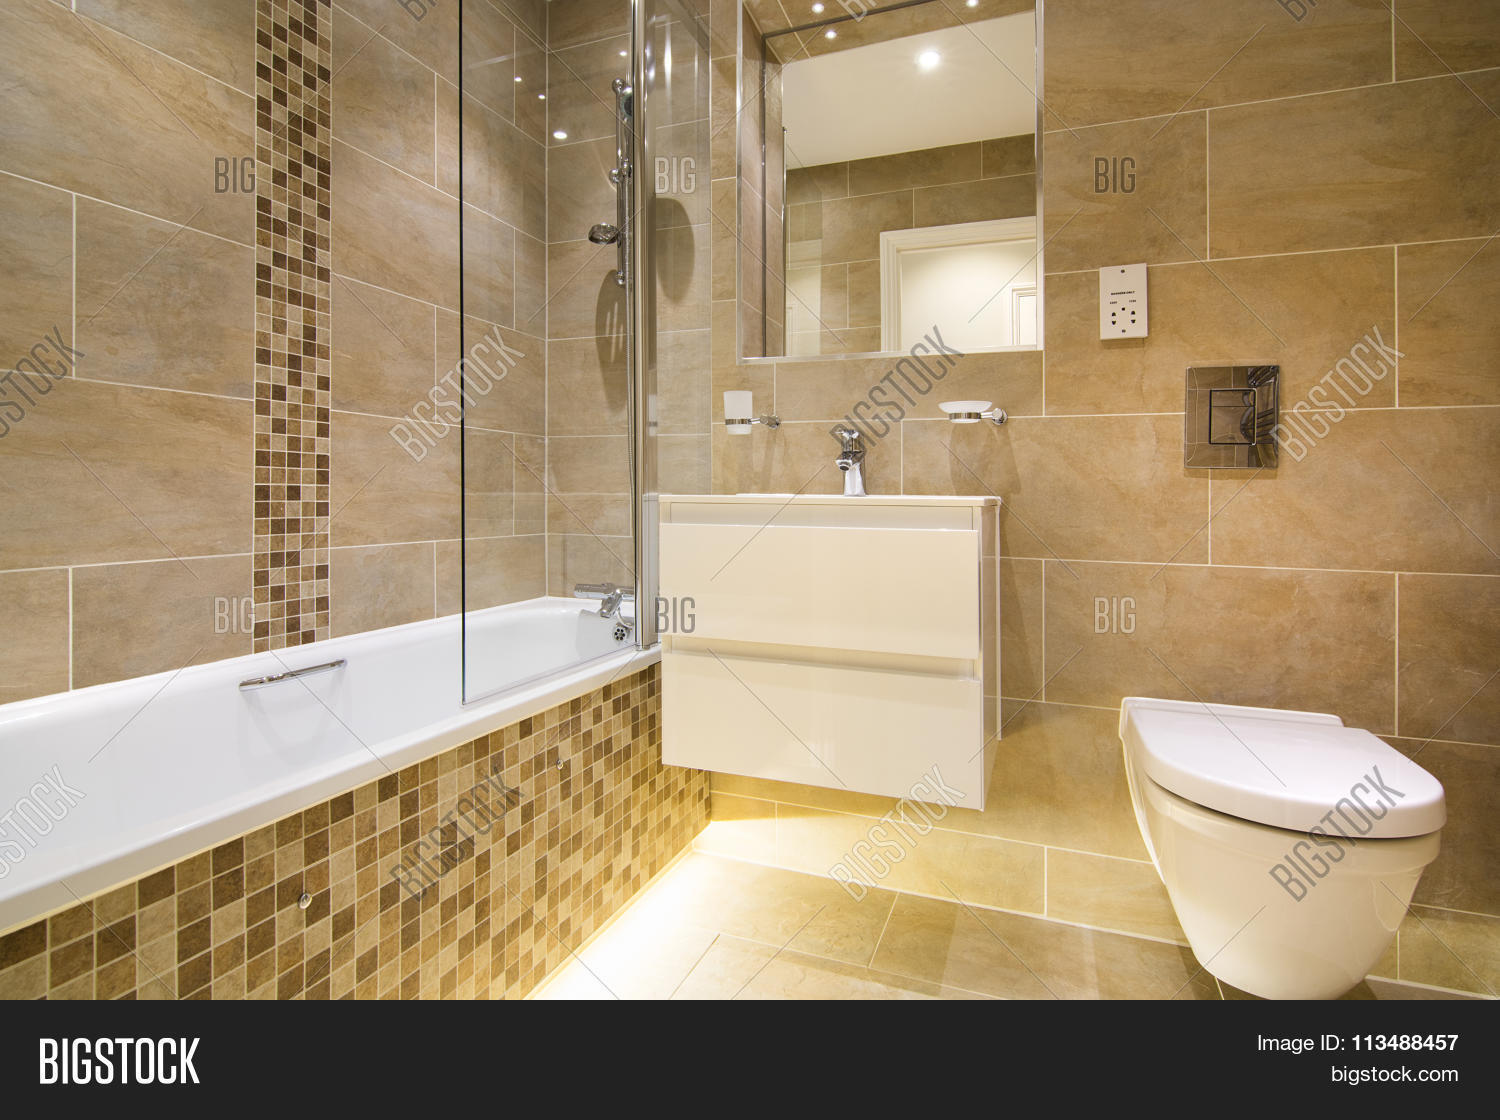 Luxury three piece bathroom beige image photo bigstock for Three piece bathroom